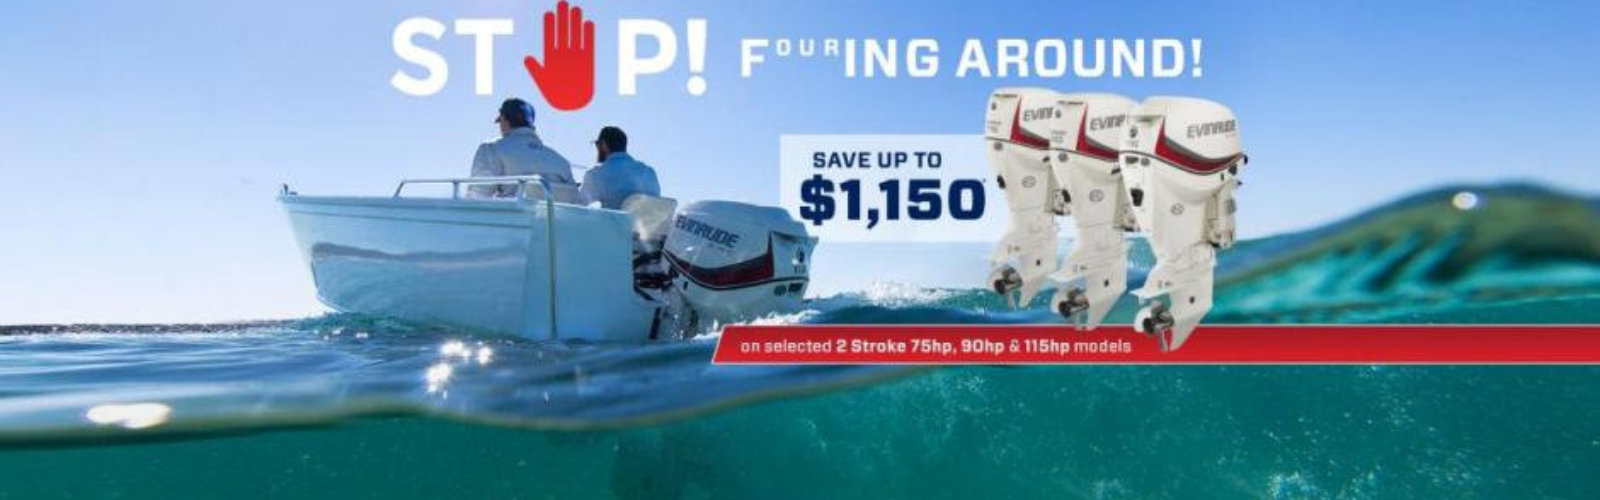 Save up to $1150 on selected 2 stroke outboards